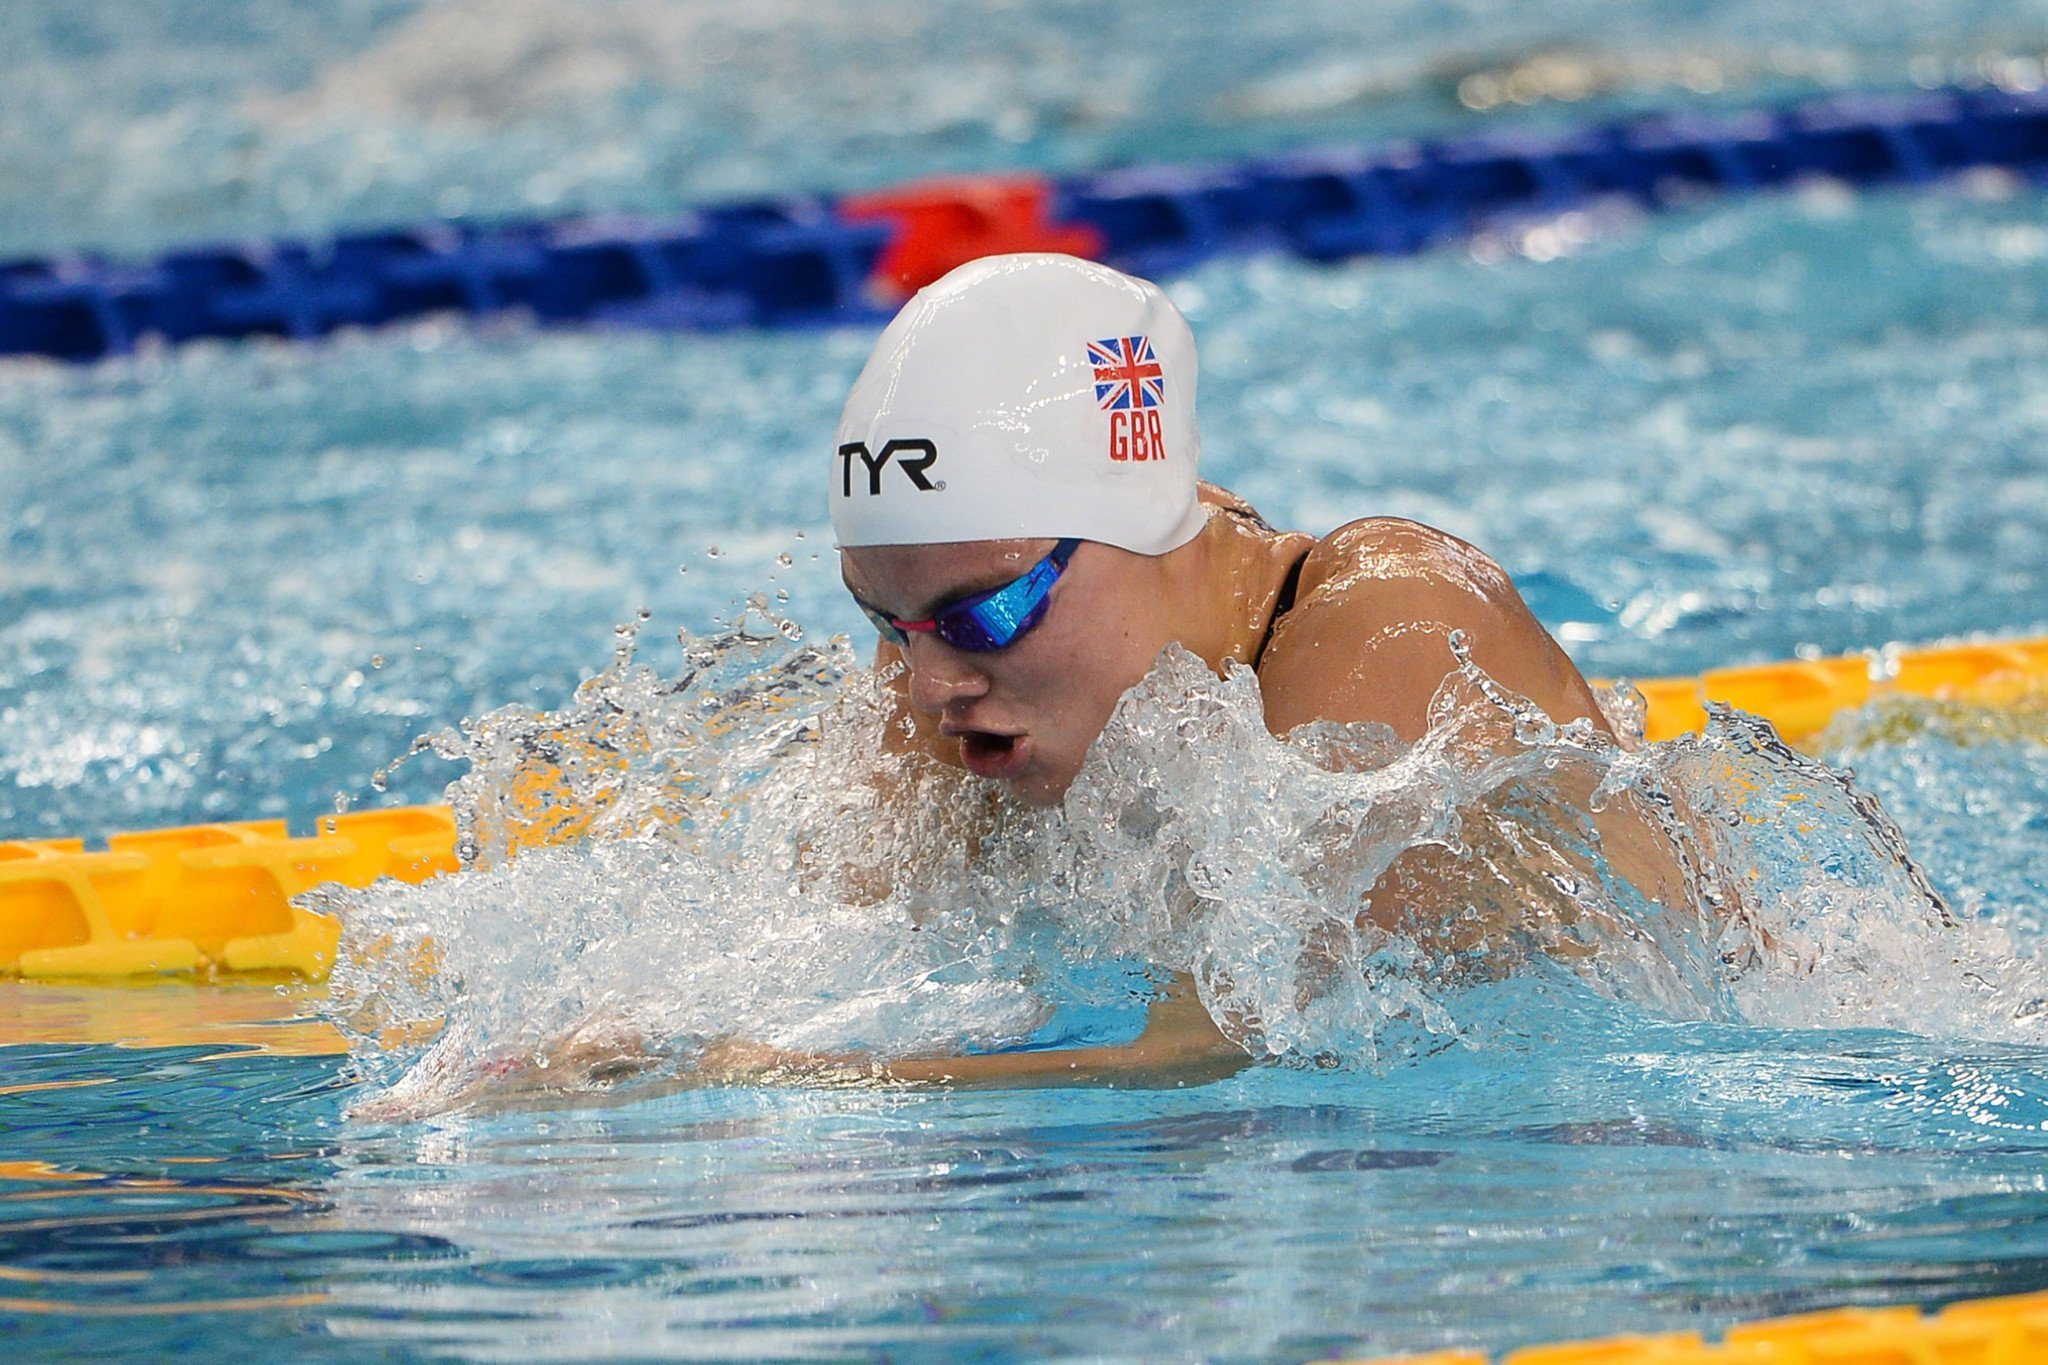 Britain's Alicia Wilson won her country's first Summer Universiade gold since 2015 as she took the women's 200m individual medley title ©Naples 2019